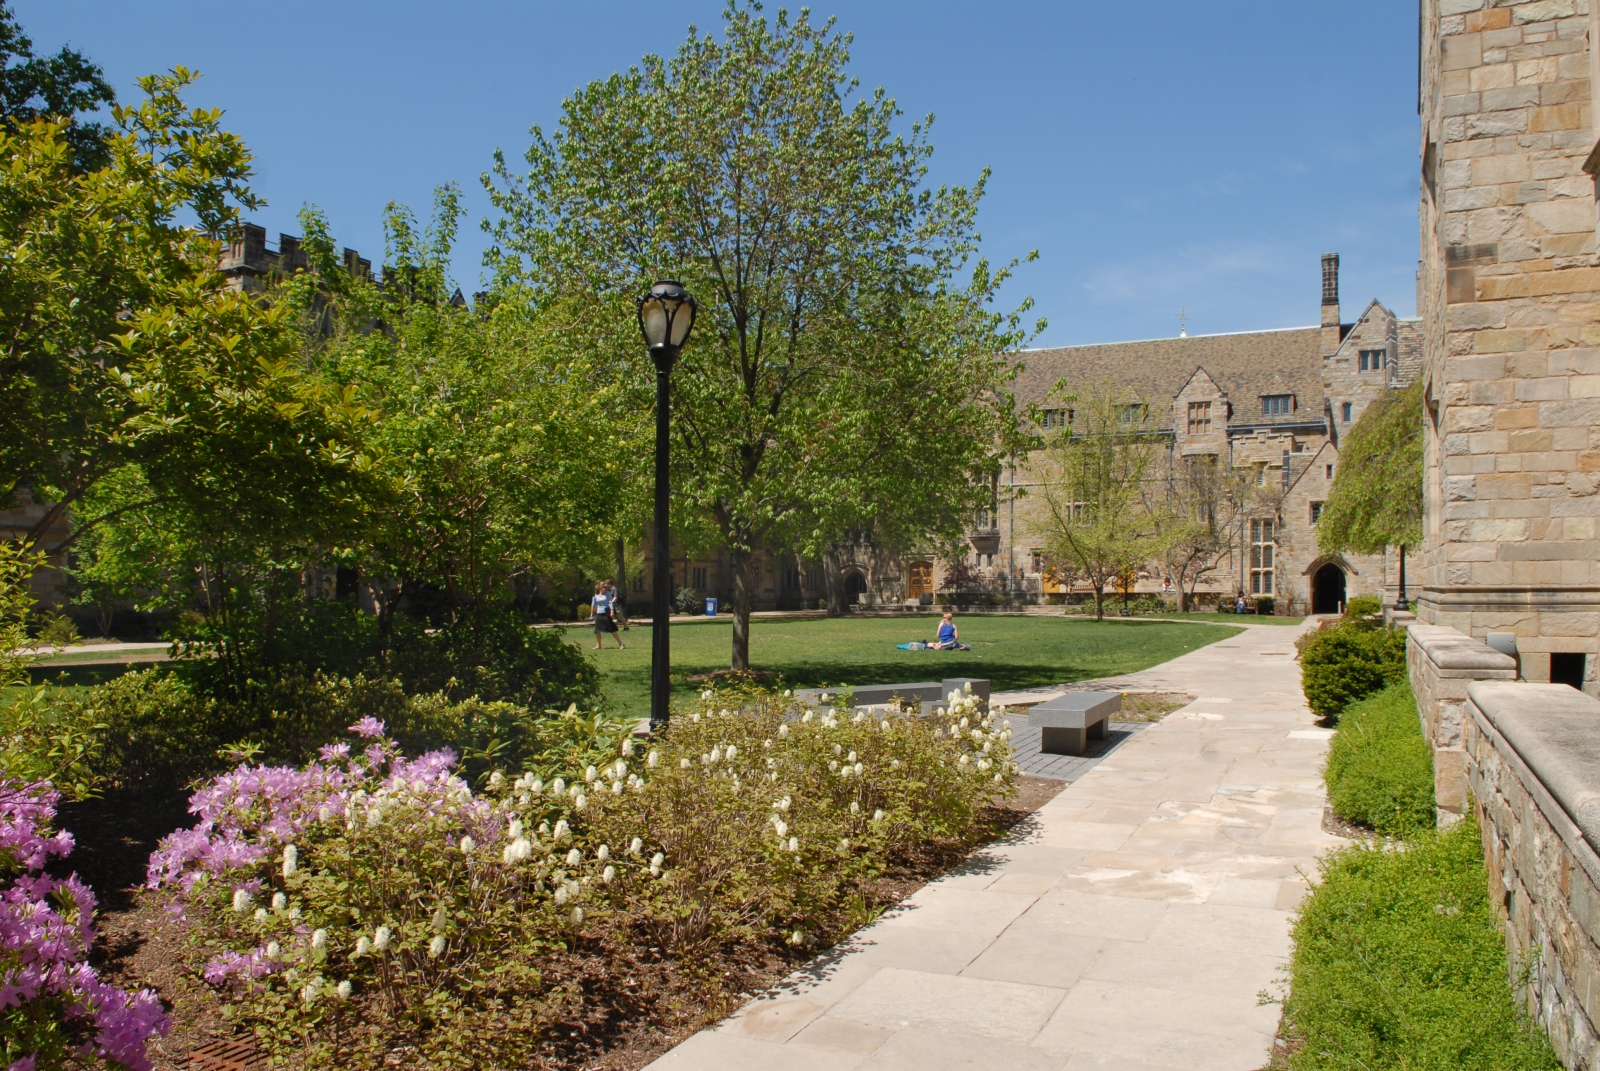 Branford College - Courtyard